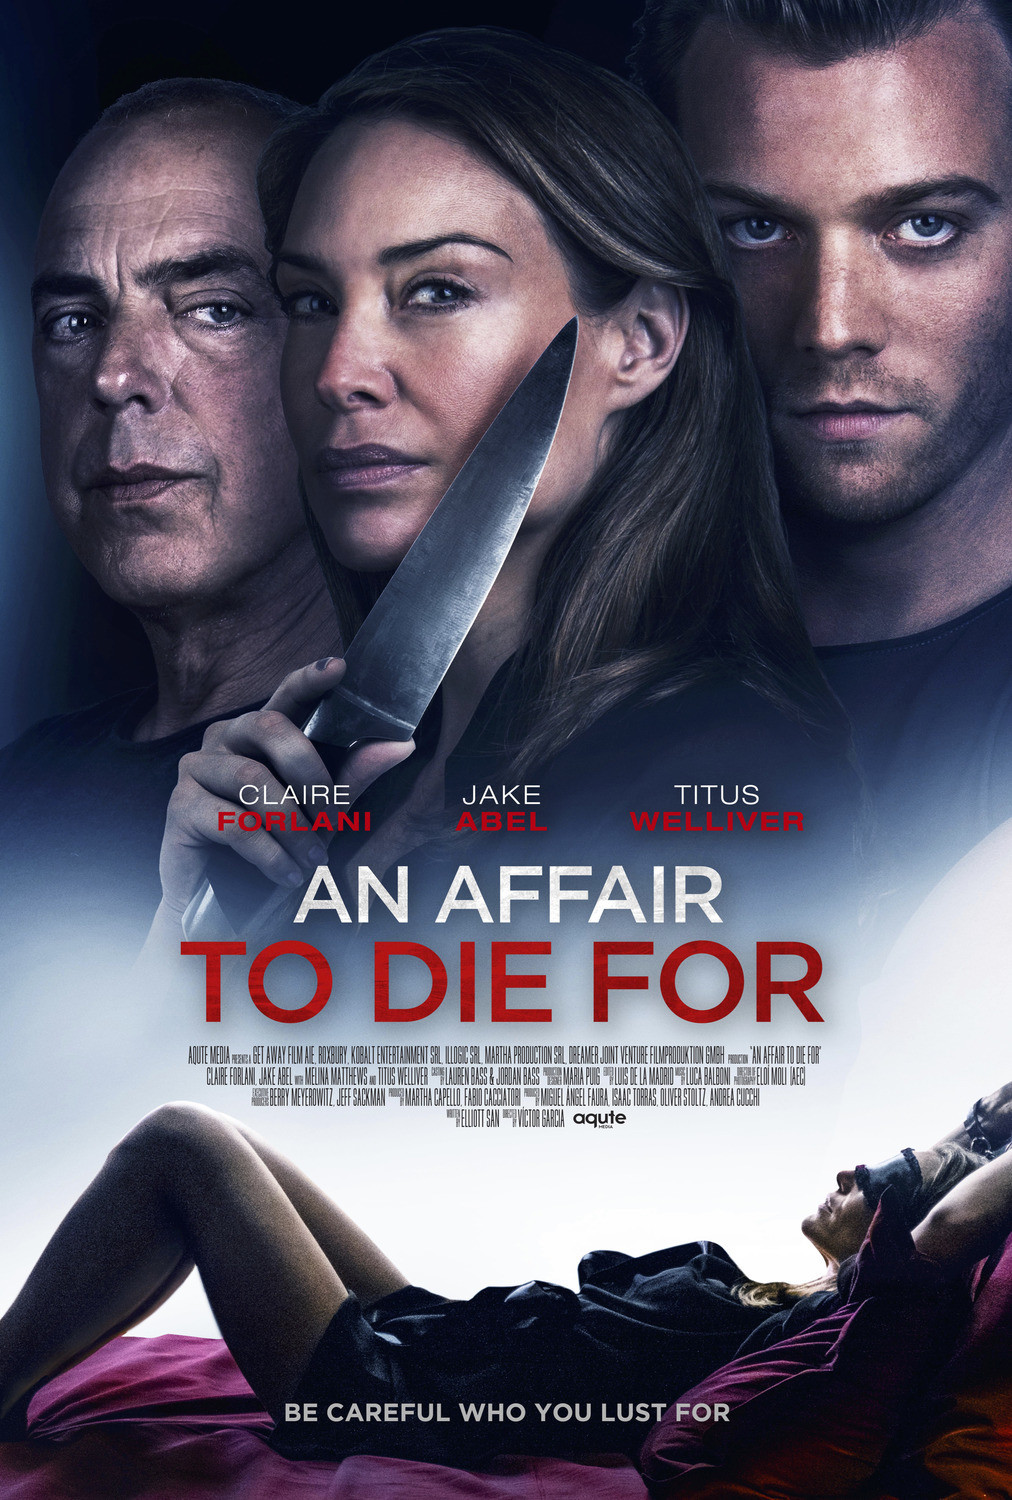 An Affair to Die For Reviews - Metacritic